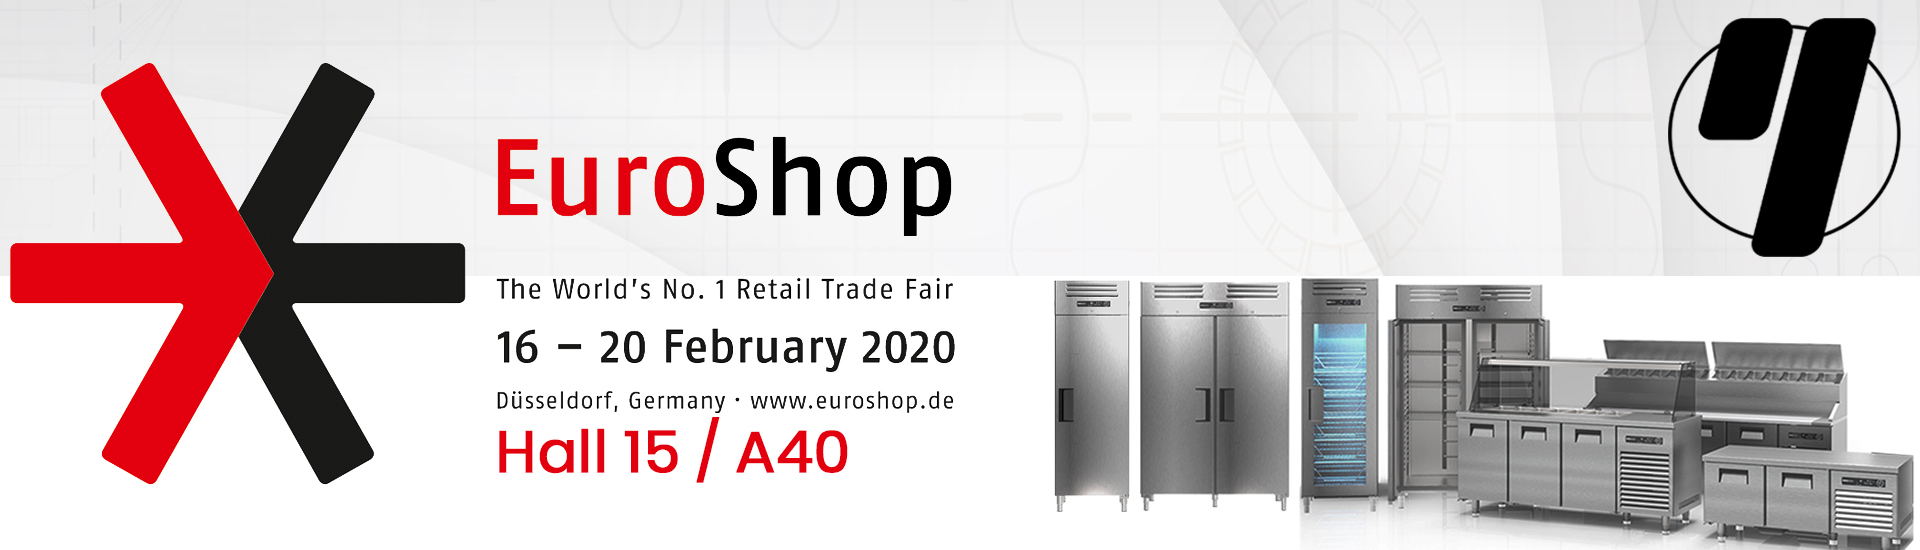 euroshop-slider-02